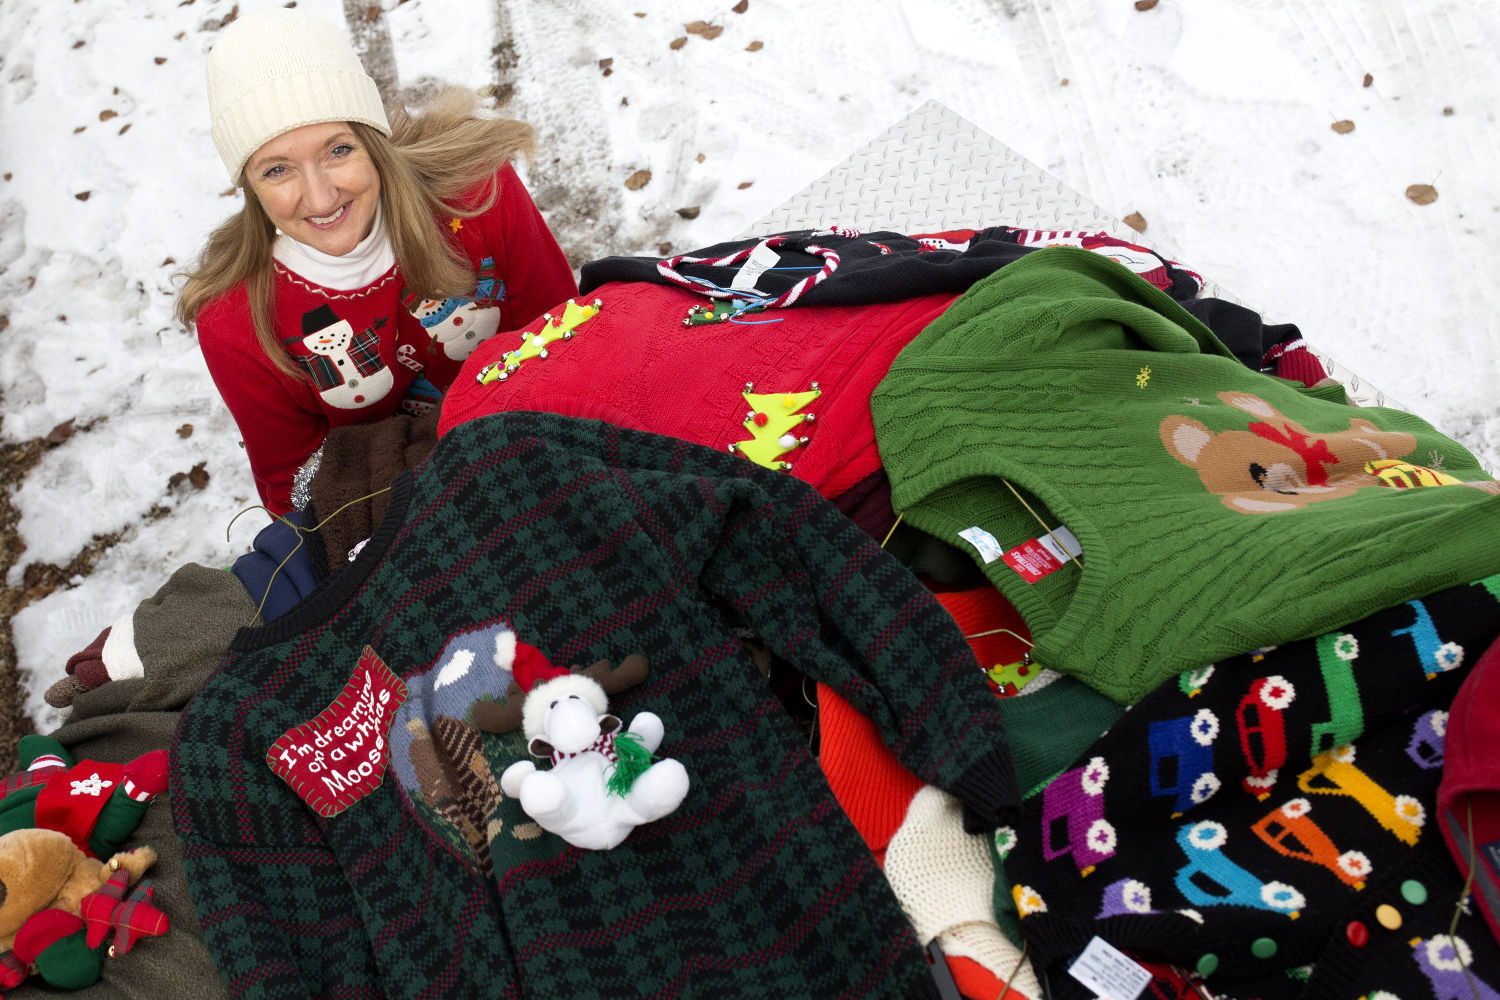 Cindy Lange-Kubick: Behold (and buy) the ugly Christmas sweater ...